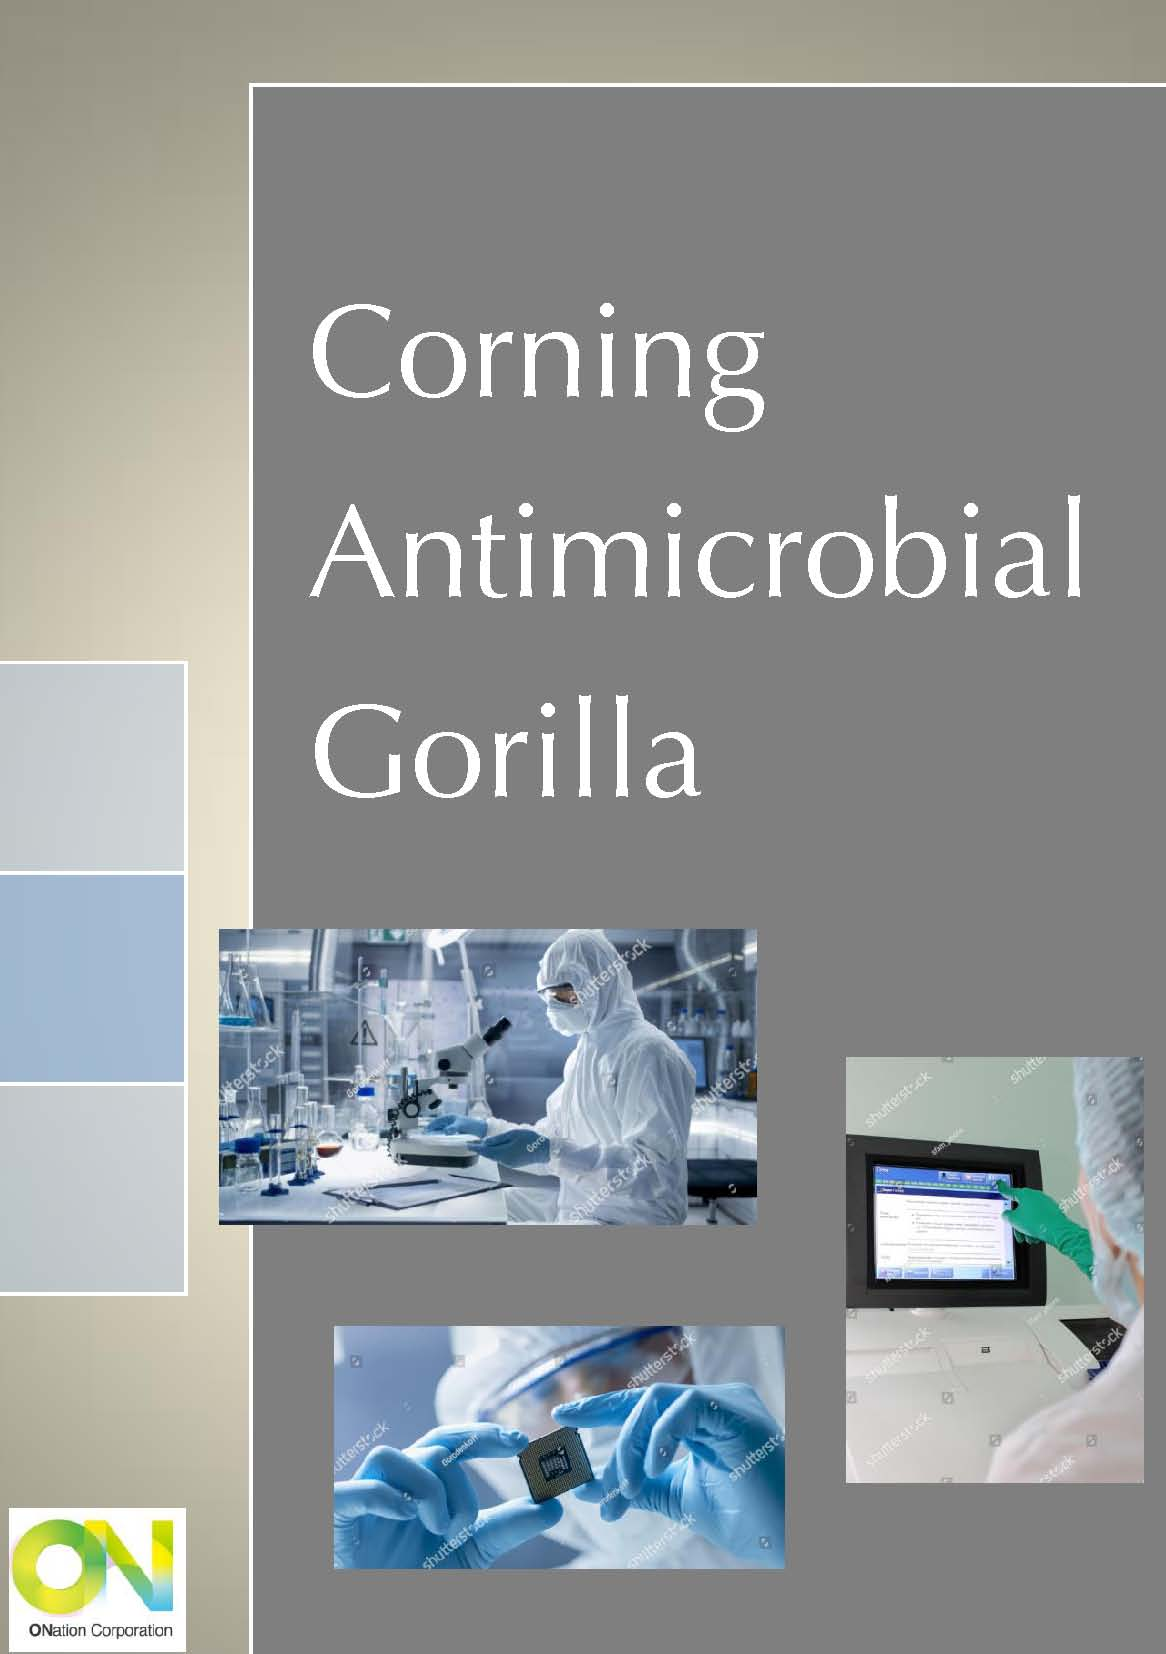 Corning Antimicrobial Gorilla